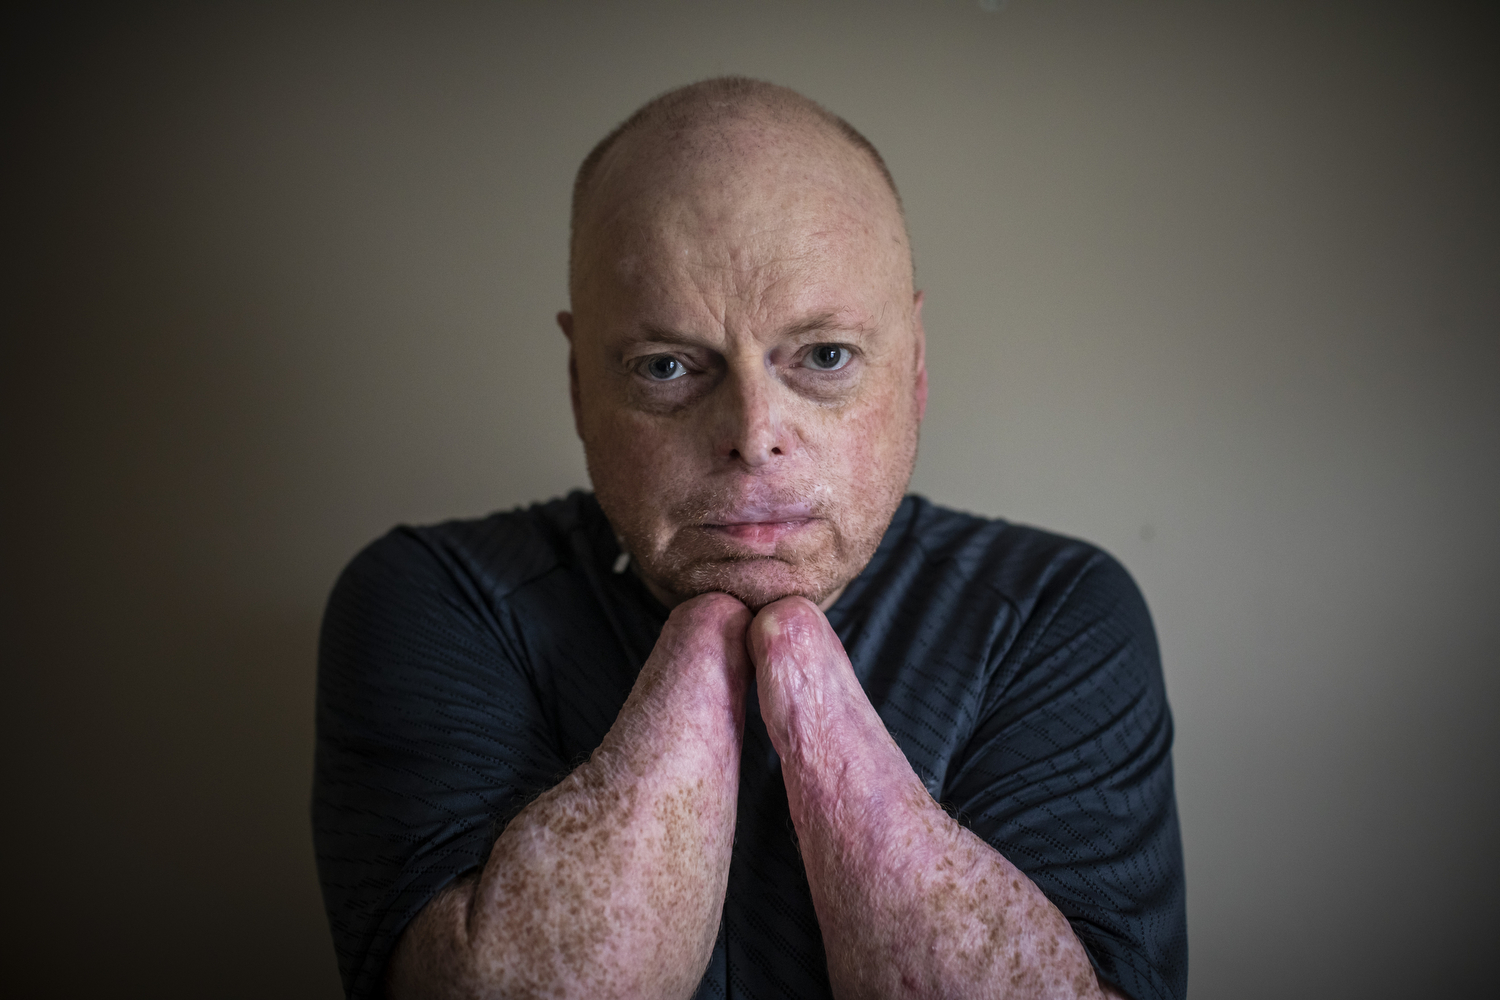 Richard Thompson, who has been selected as a candidate for Canada's first double hand transplant, pictured in his apartment in Coquitlam, B.C., on Feb. 27, 2020. (Ben Nelms/CBC Vancouver)